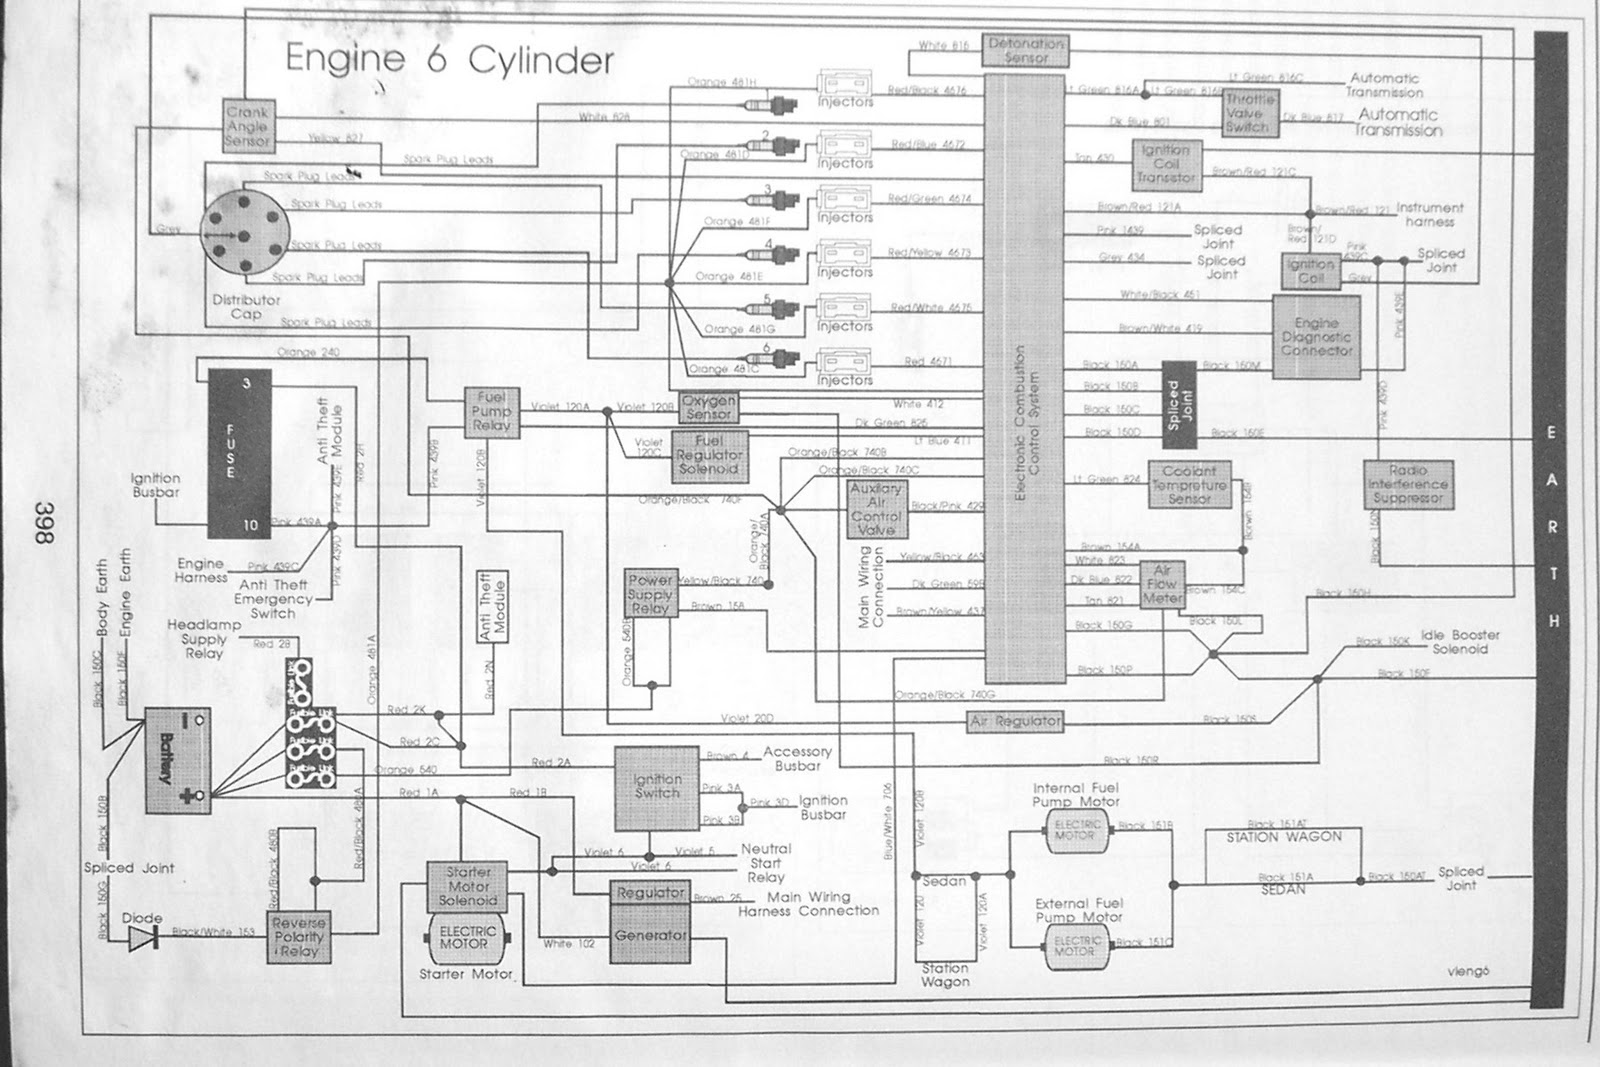 14b rb30 wiring diagrams 280zx project vl wiring diagram at n-0.co